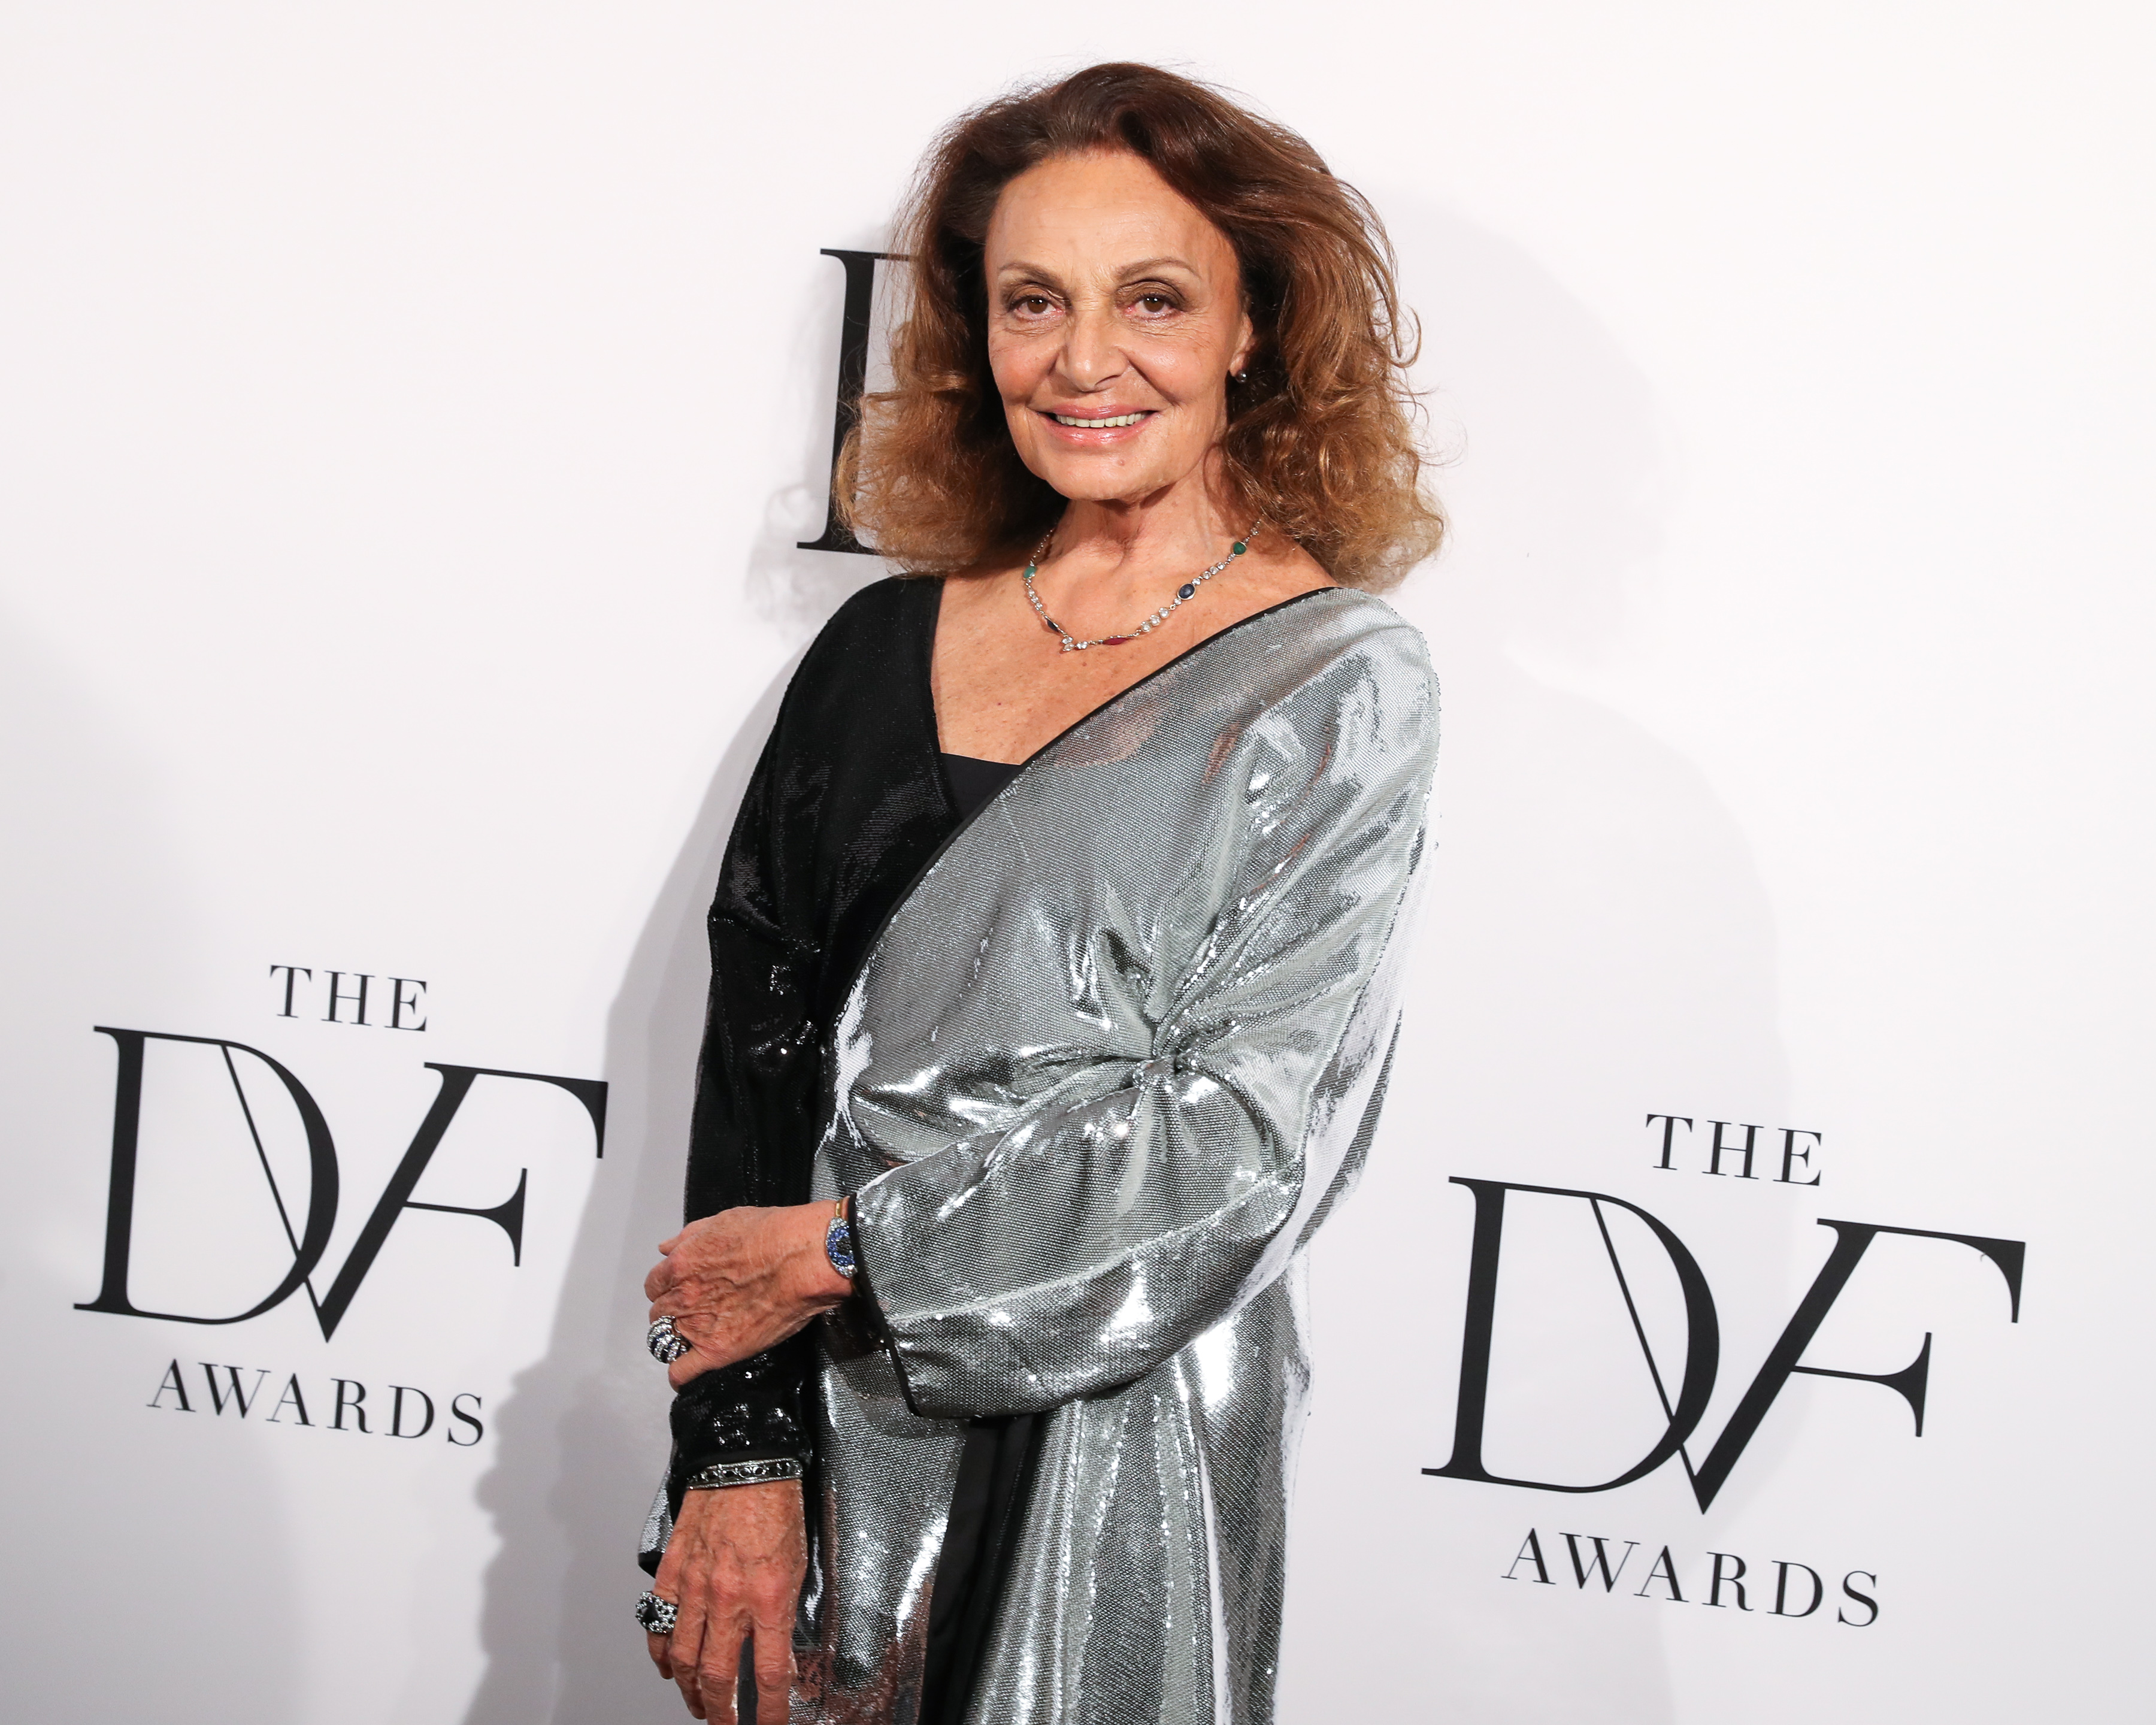 Diane von Furstenberg8th Annual DVF Awards, Show, New York, USA - 06 Apr 2017